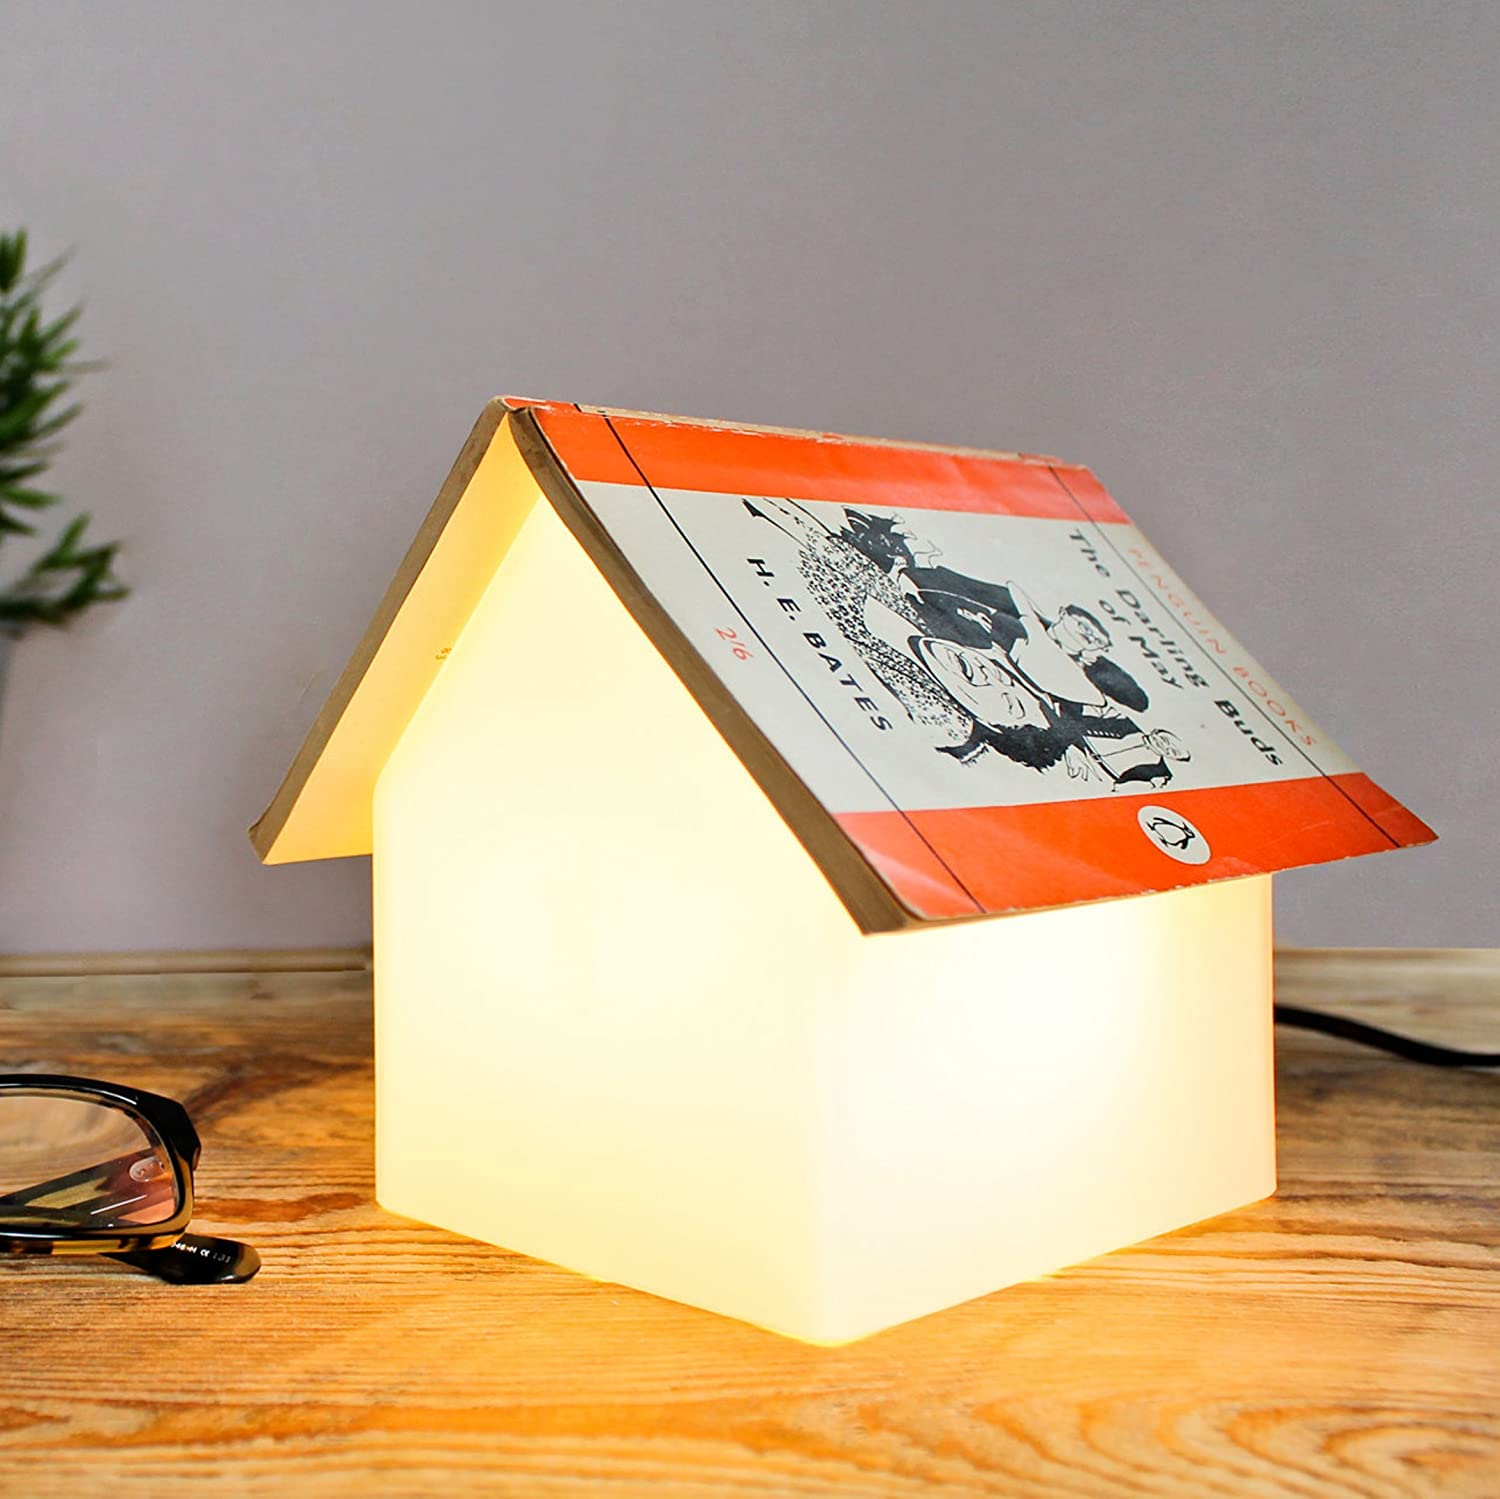 suck uk book rest lamp home kitchen